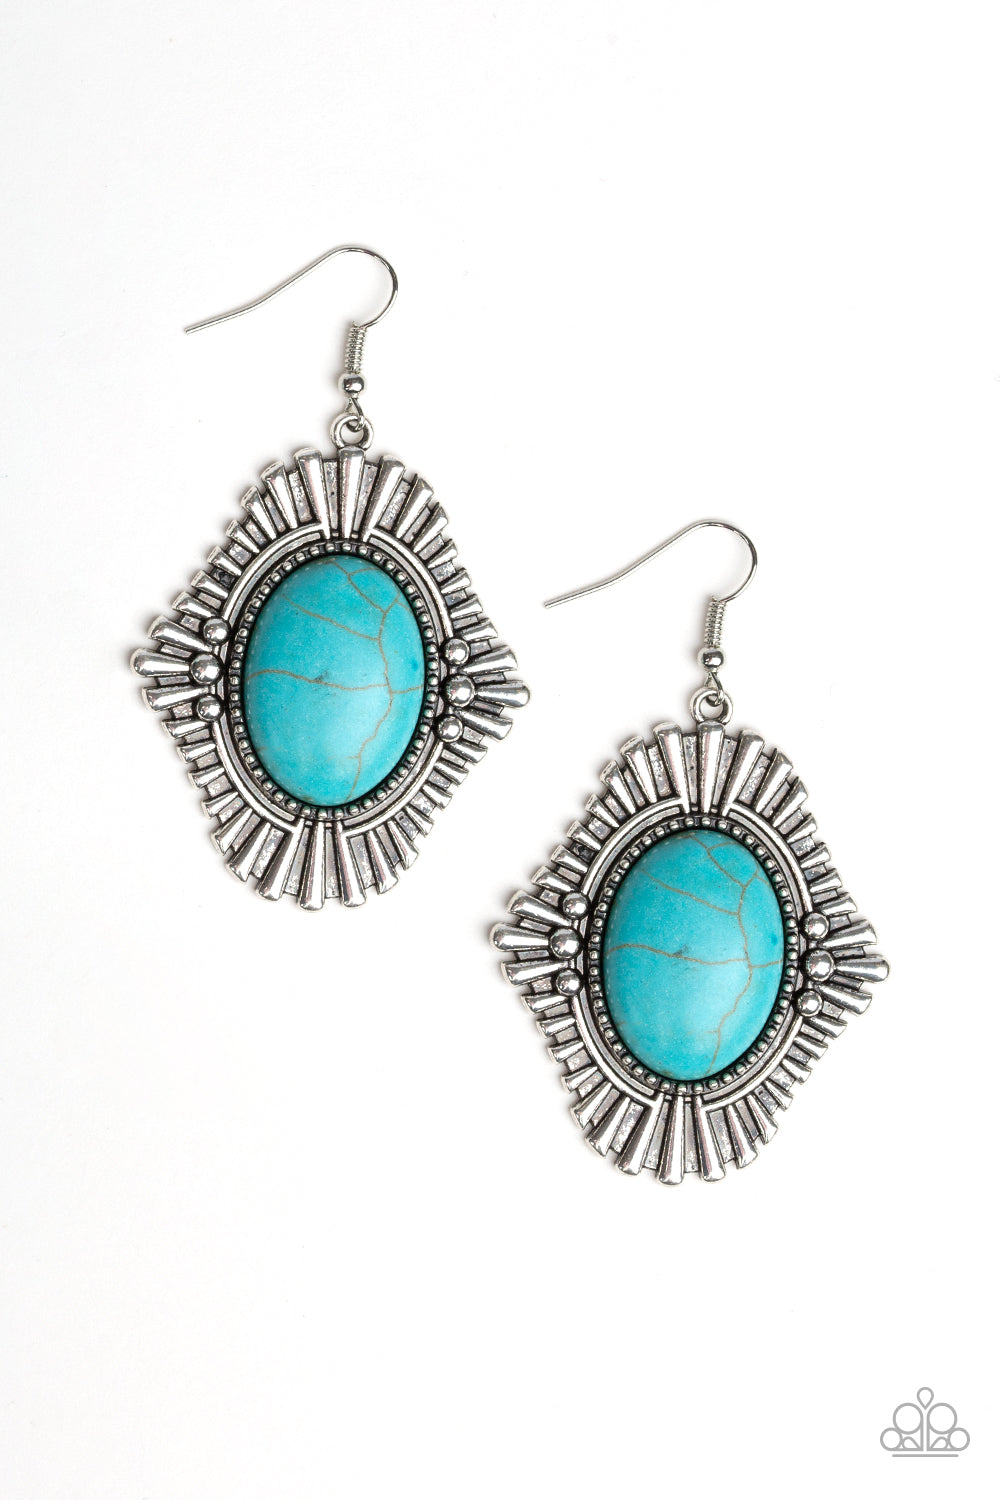 Easy As PIONEER - Blue Turquoise